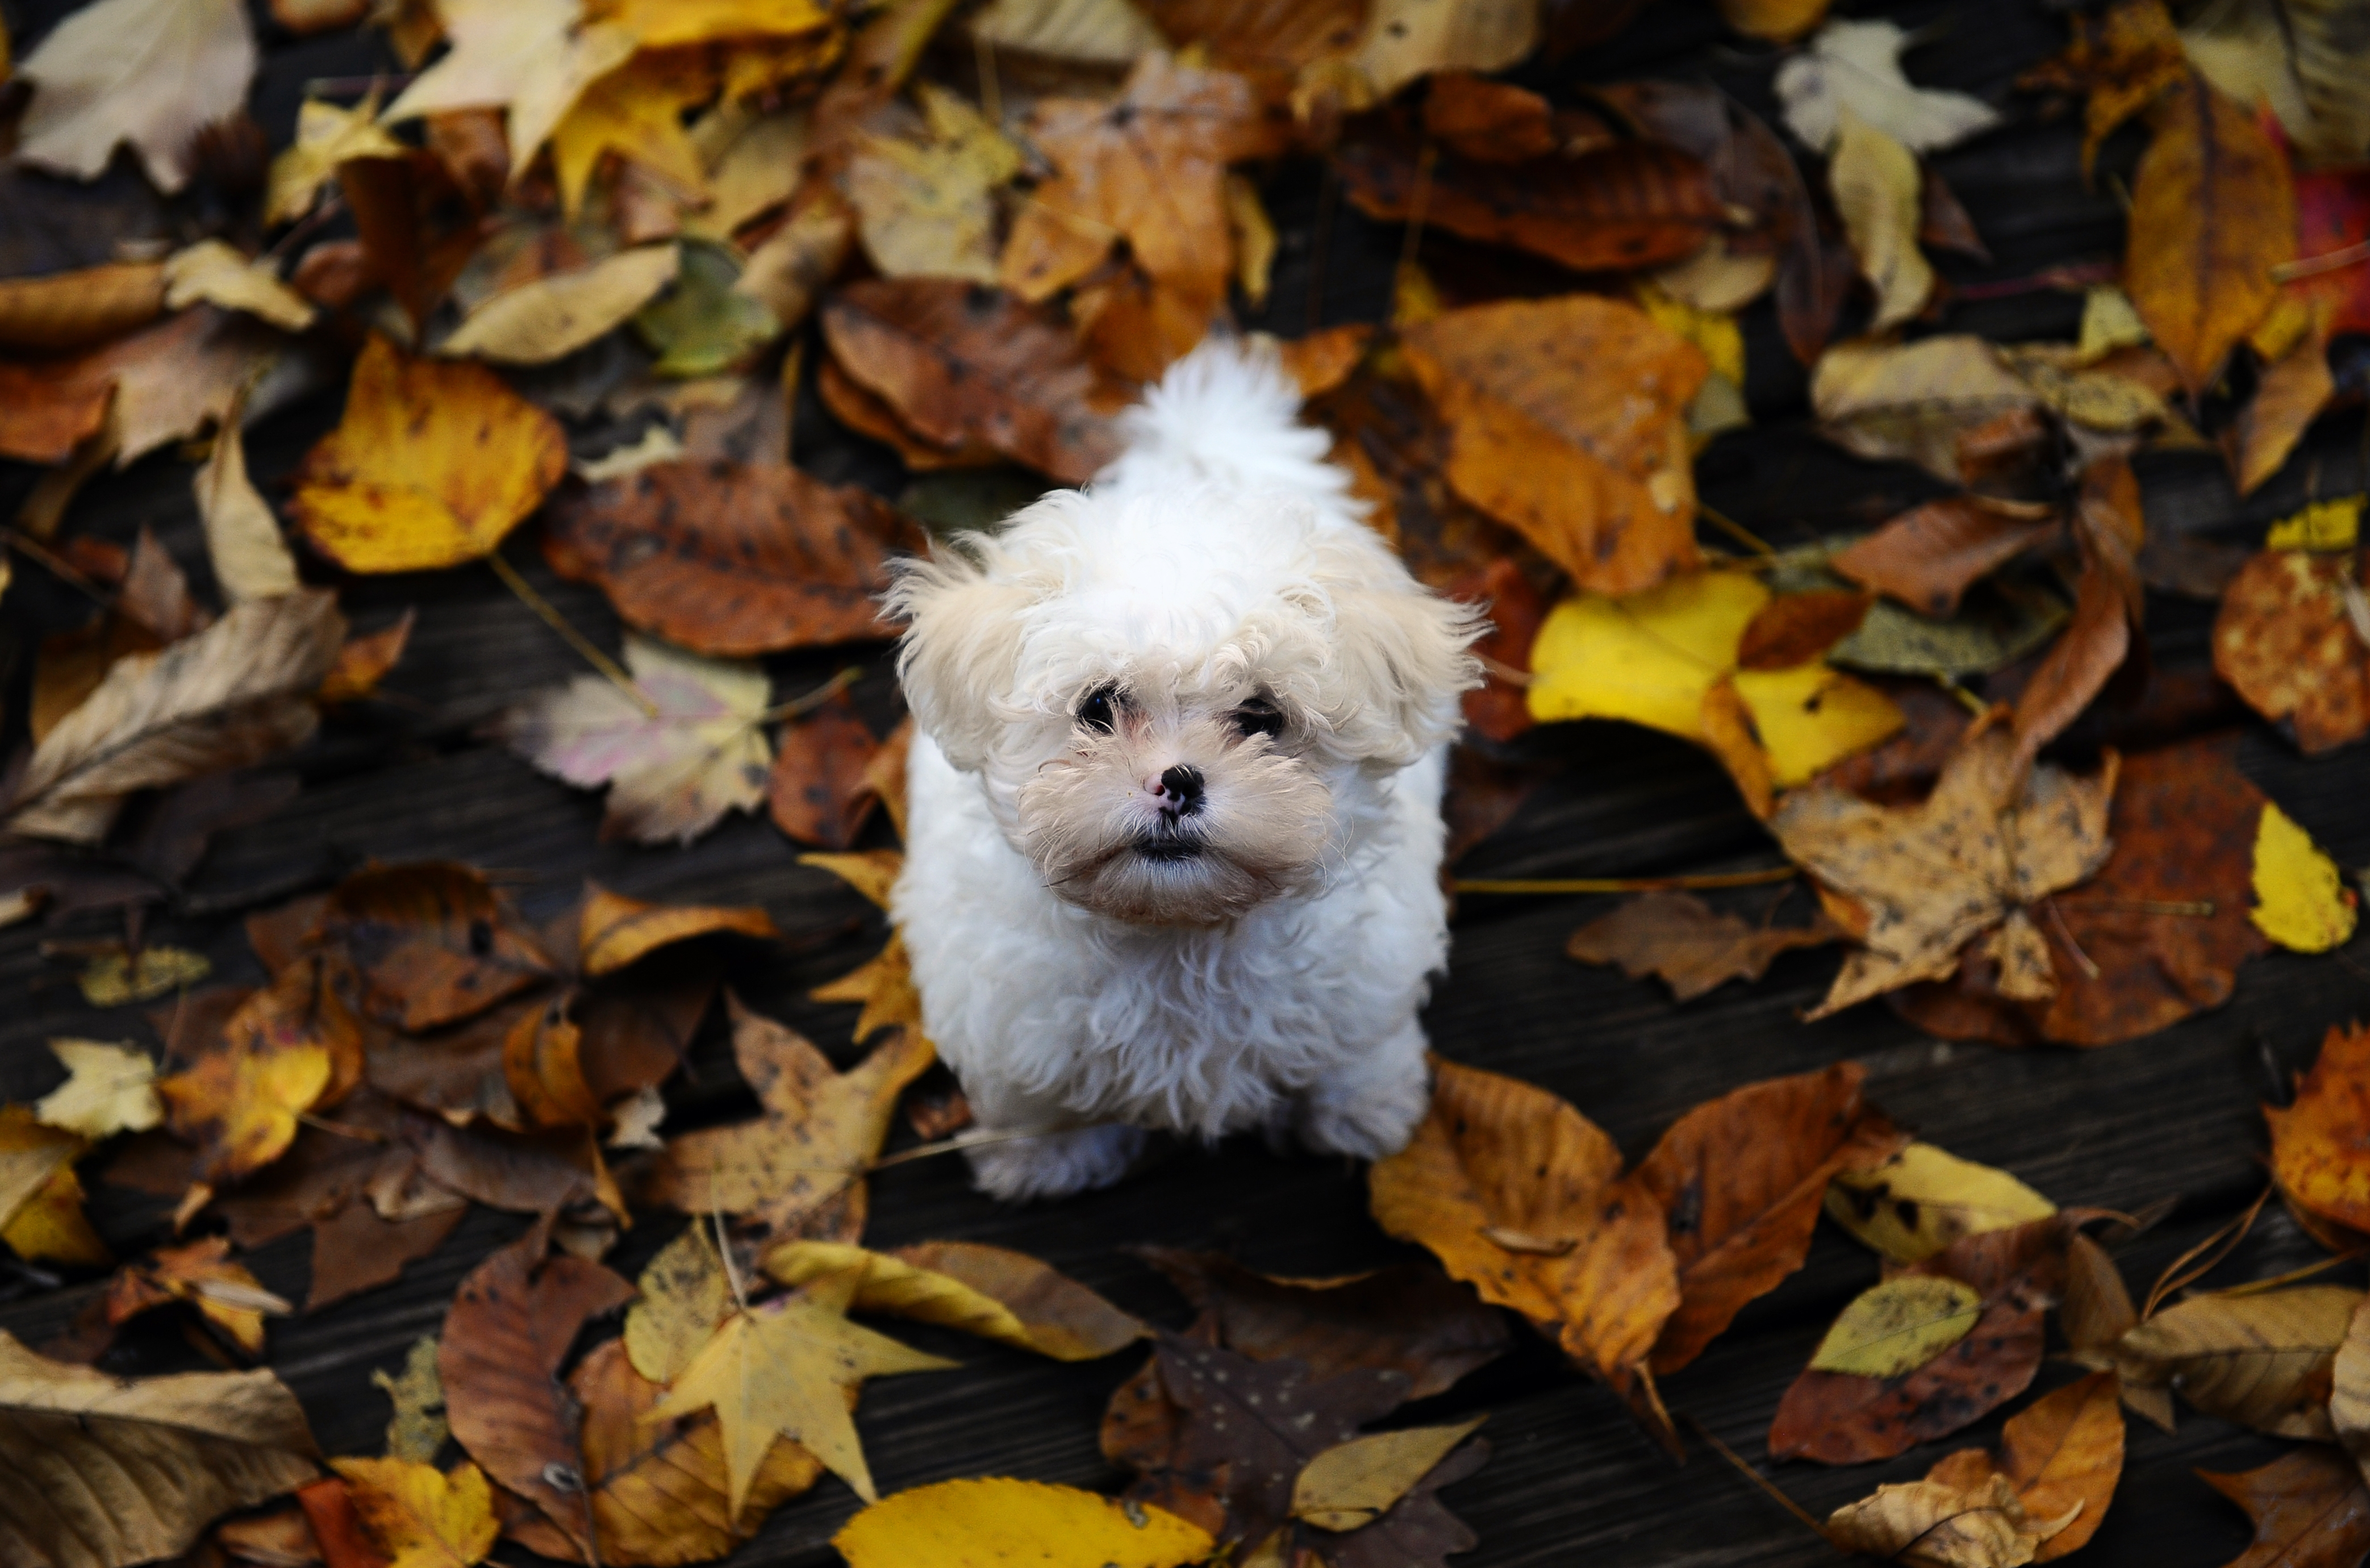 52622 download wallpaper Animals, Puppy, Fluffy, Mud, Dirt, Leaves, Autumn screensavers and pictures for free